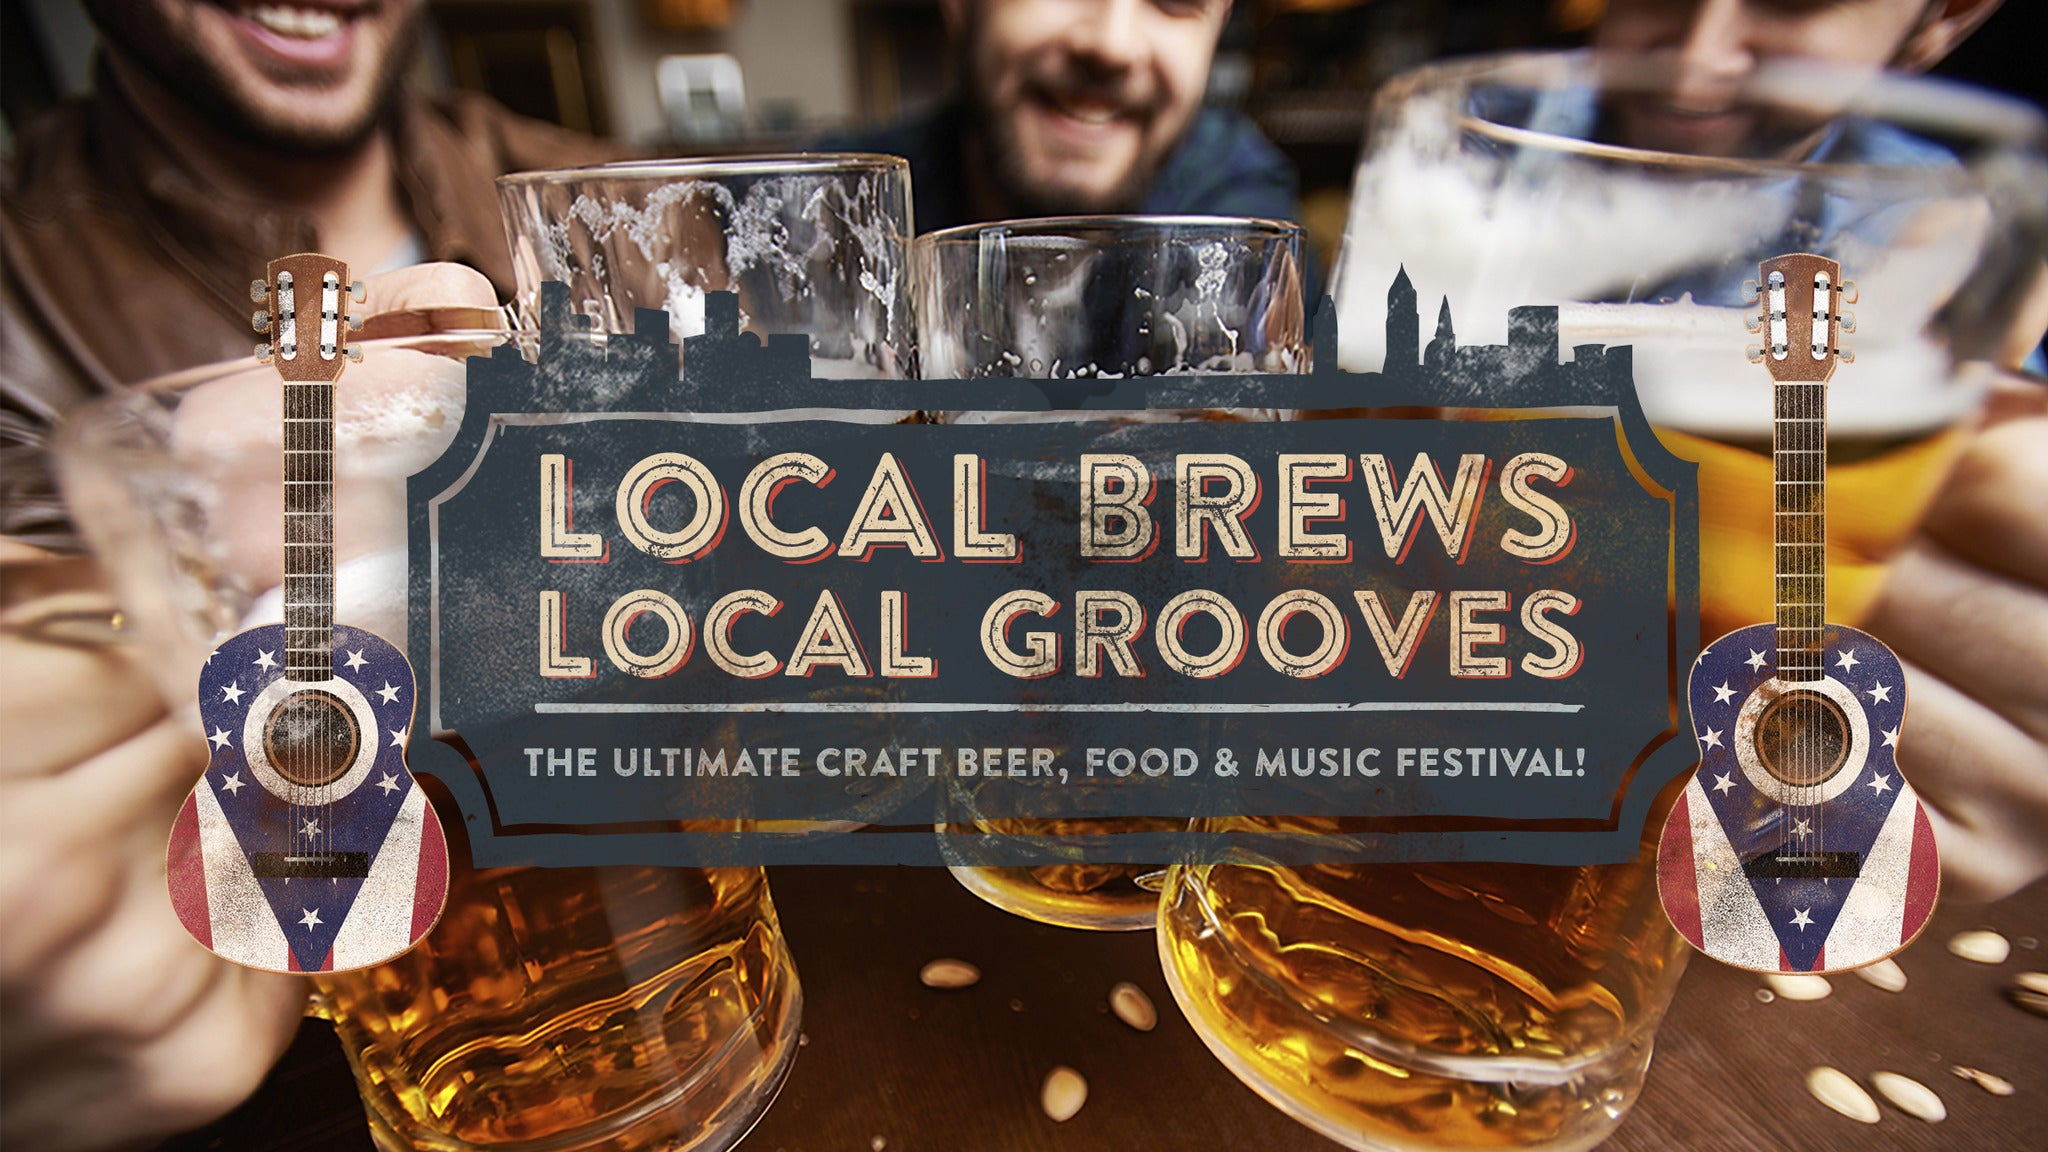 Local Brews Local Grooves